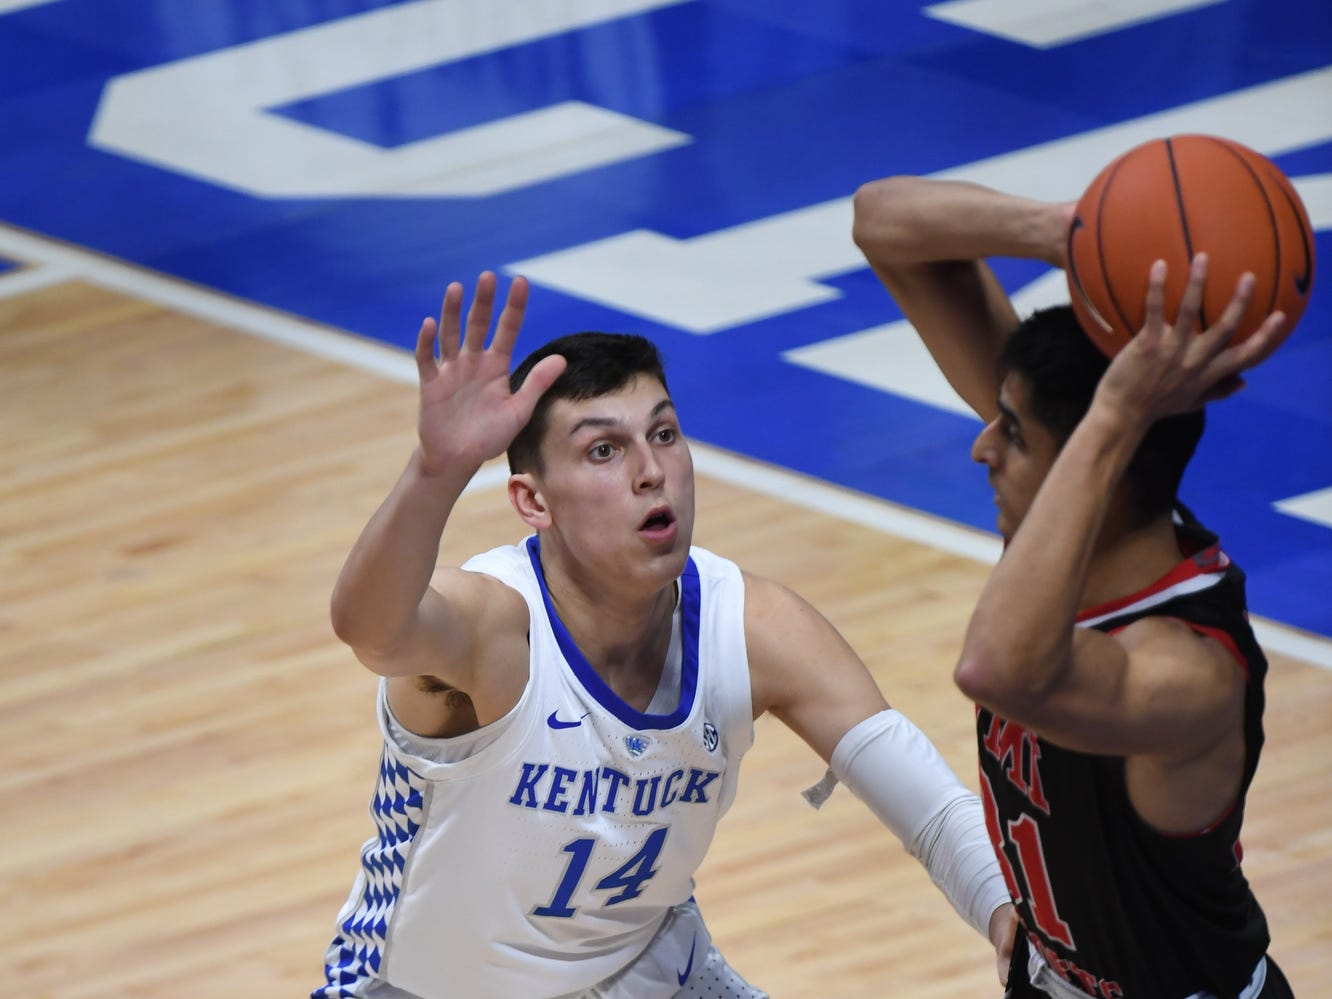 UK G Tyler Herro defends the ball during the University of Kentucky mens basketball game against VMI at Rupp Arena in Lexington, Kentucky on Sunday, November 18, 2018.